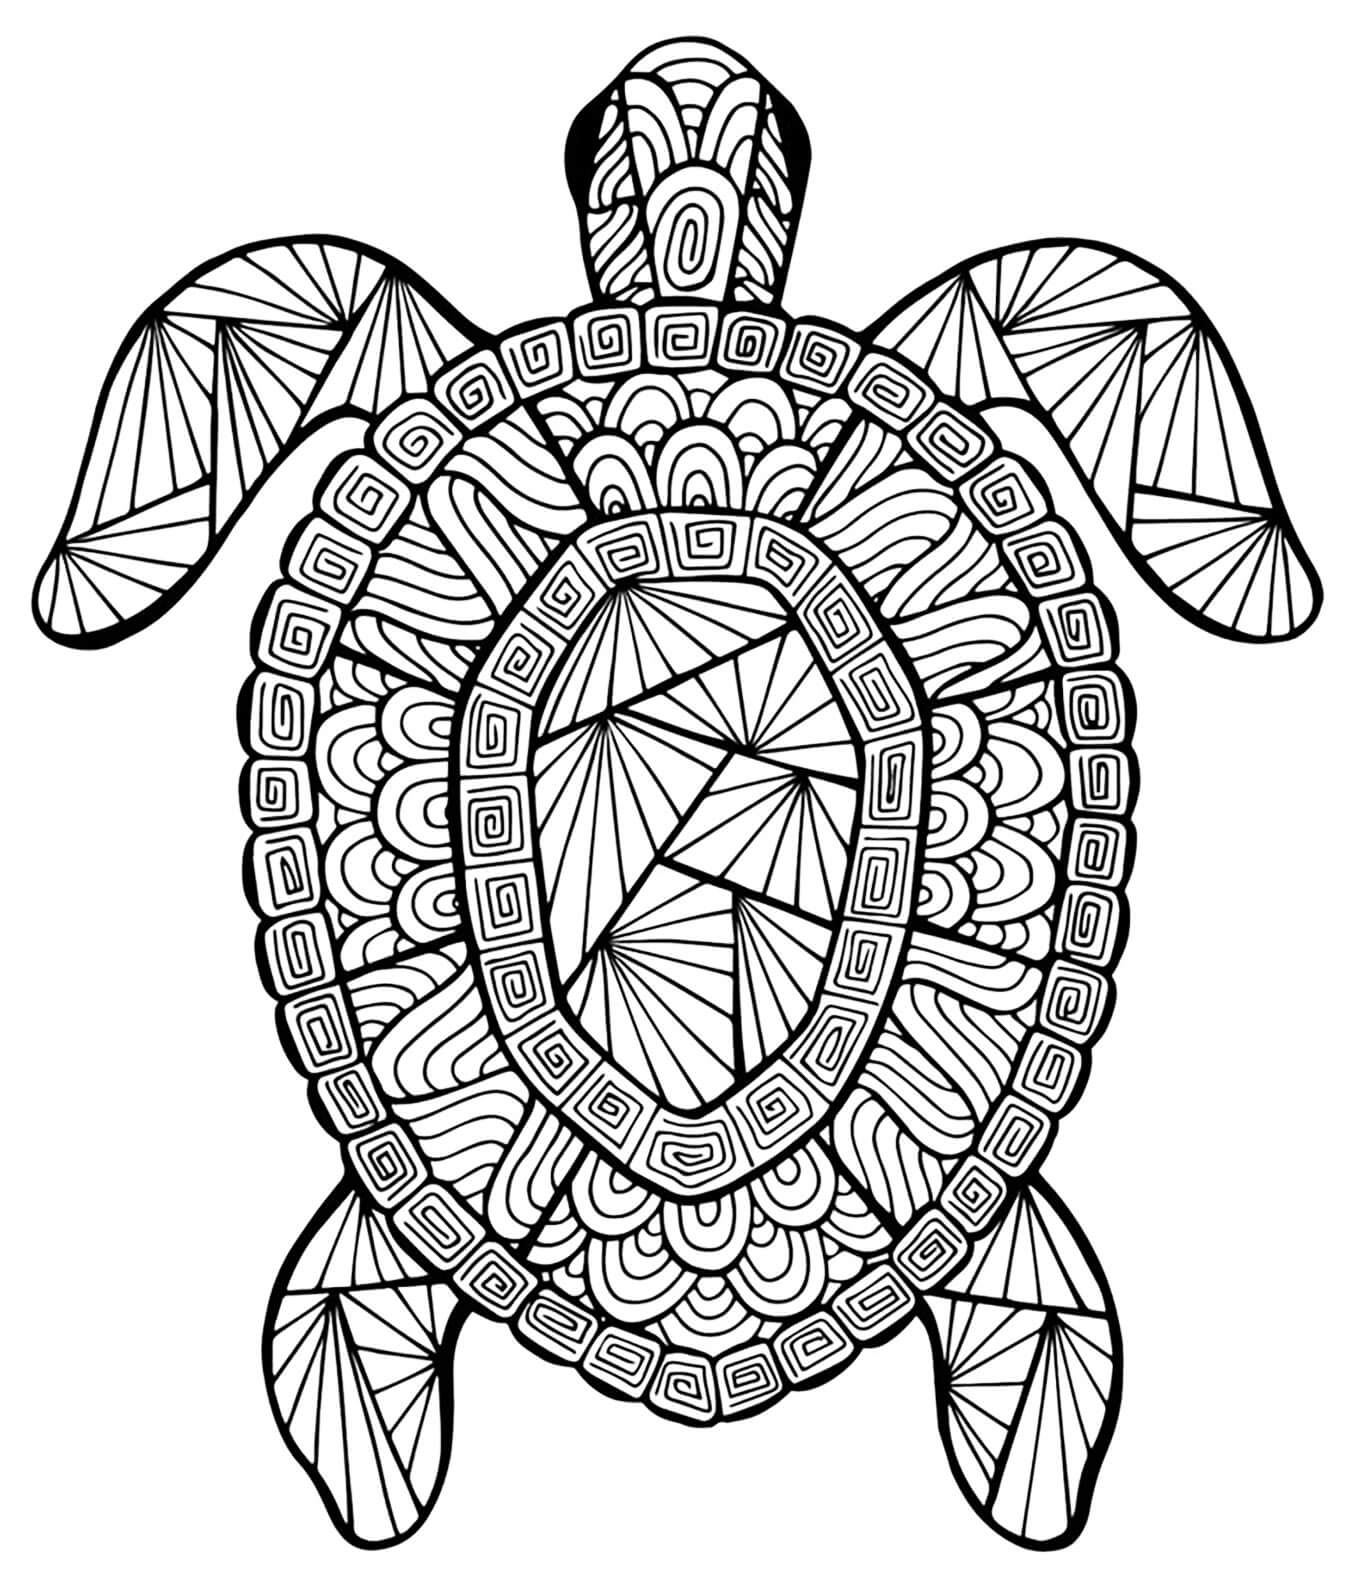 difficult coloring pages for teenagers coloring pages interesting coloring sheets for teens teenagers difficult for coloring pages